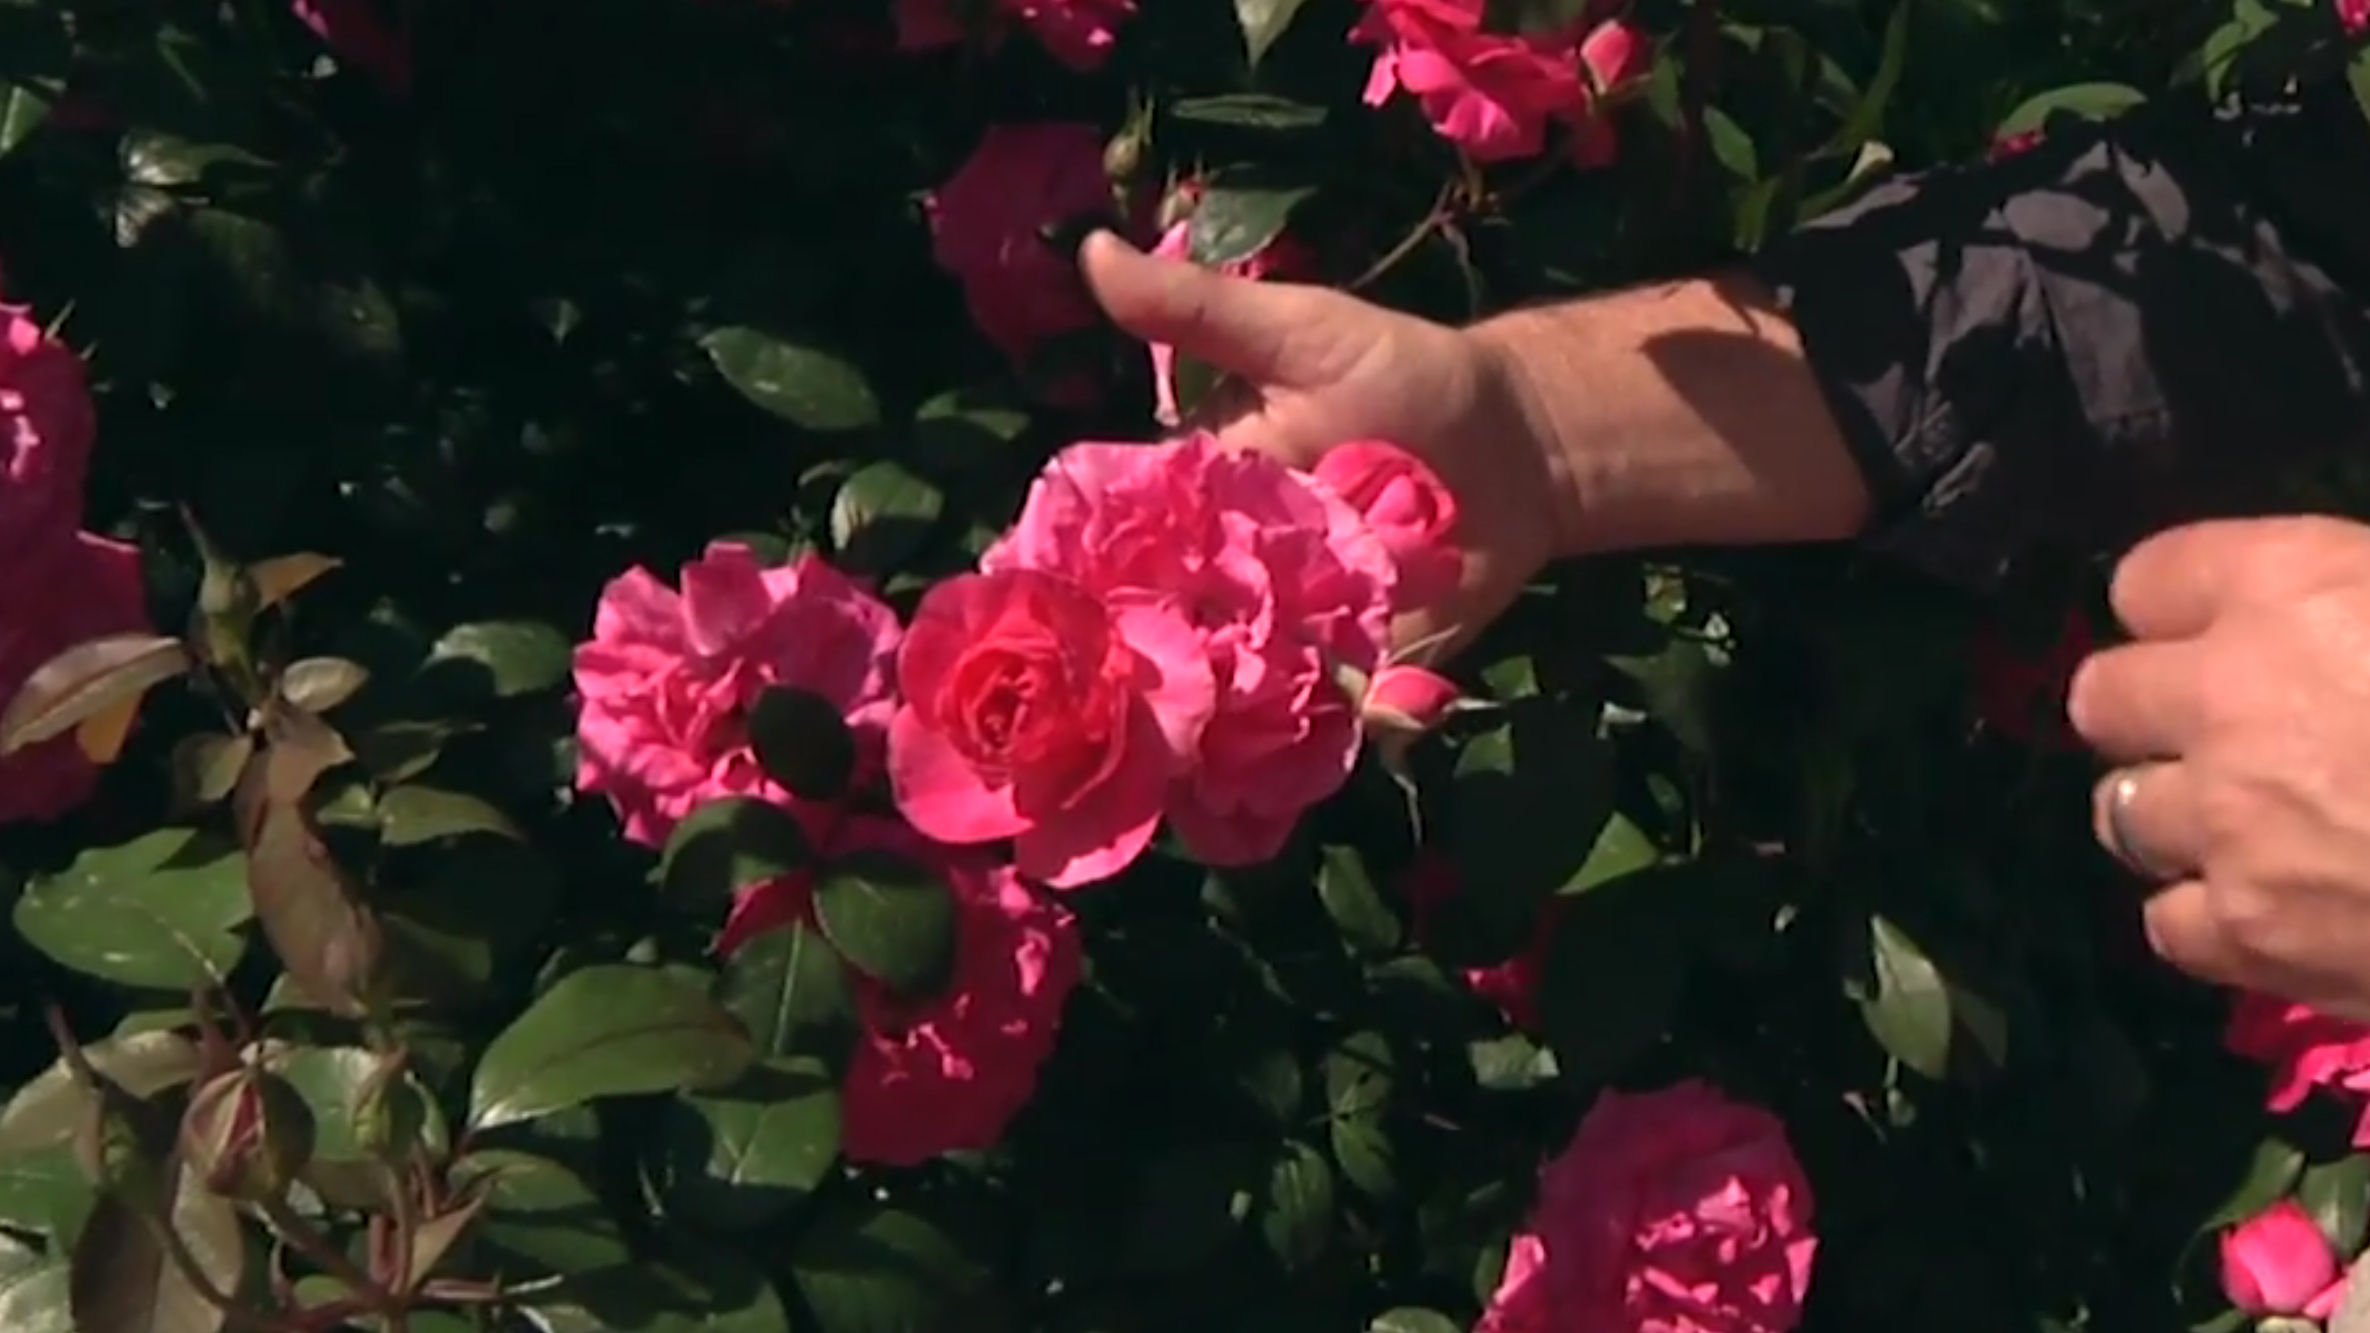 A hand holding a Tahitian Treasure Rose on the bush as a demonstration for a Homegrown video from NC State Extension.